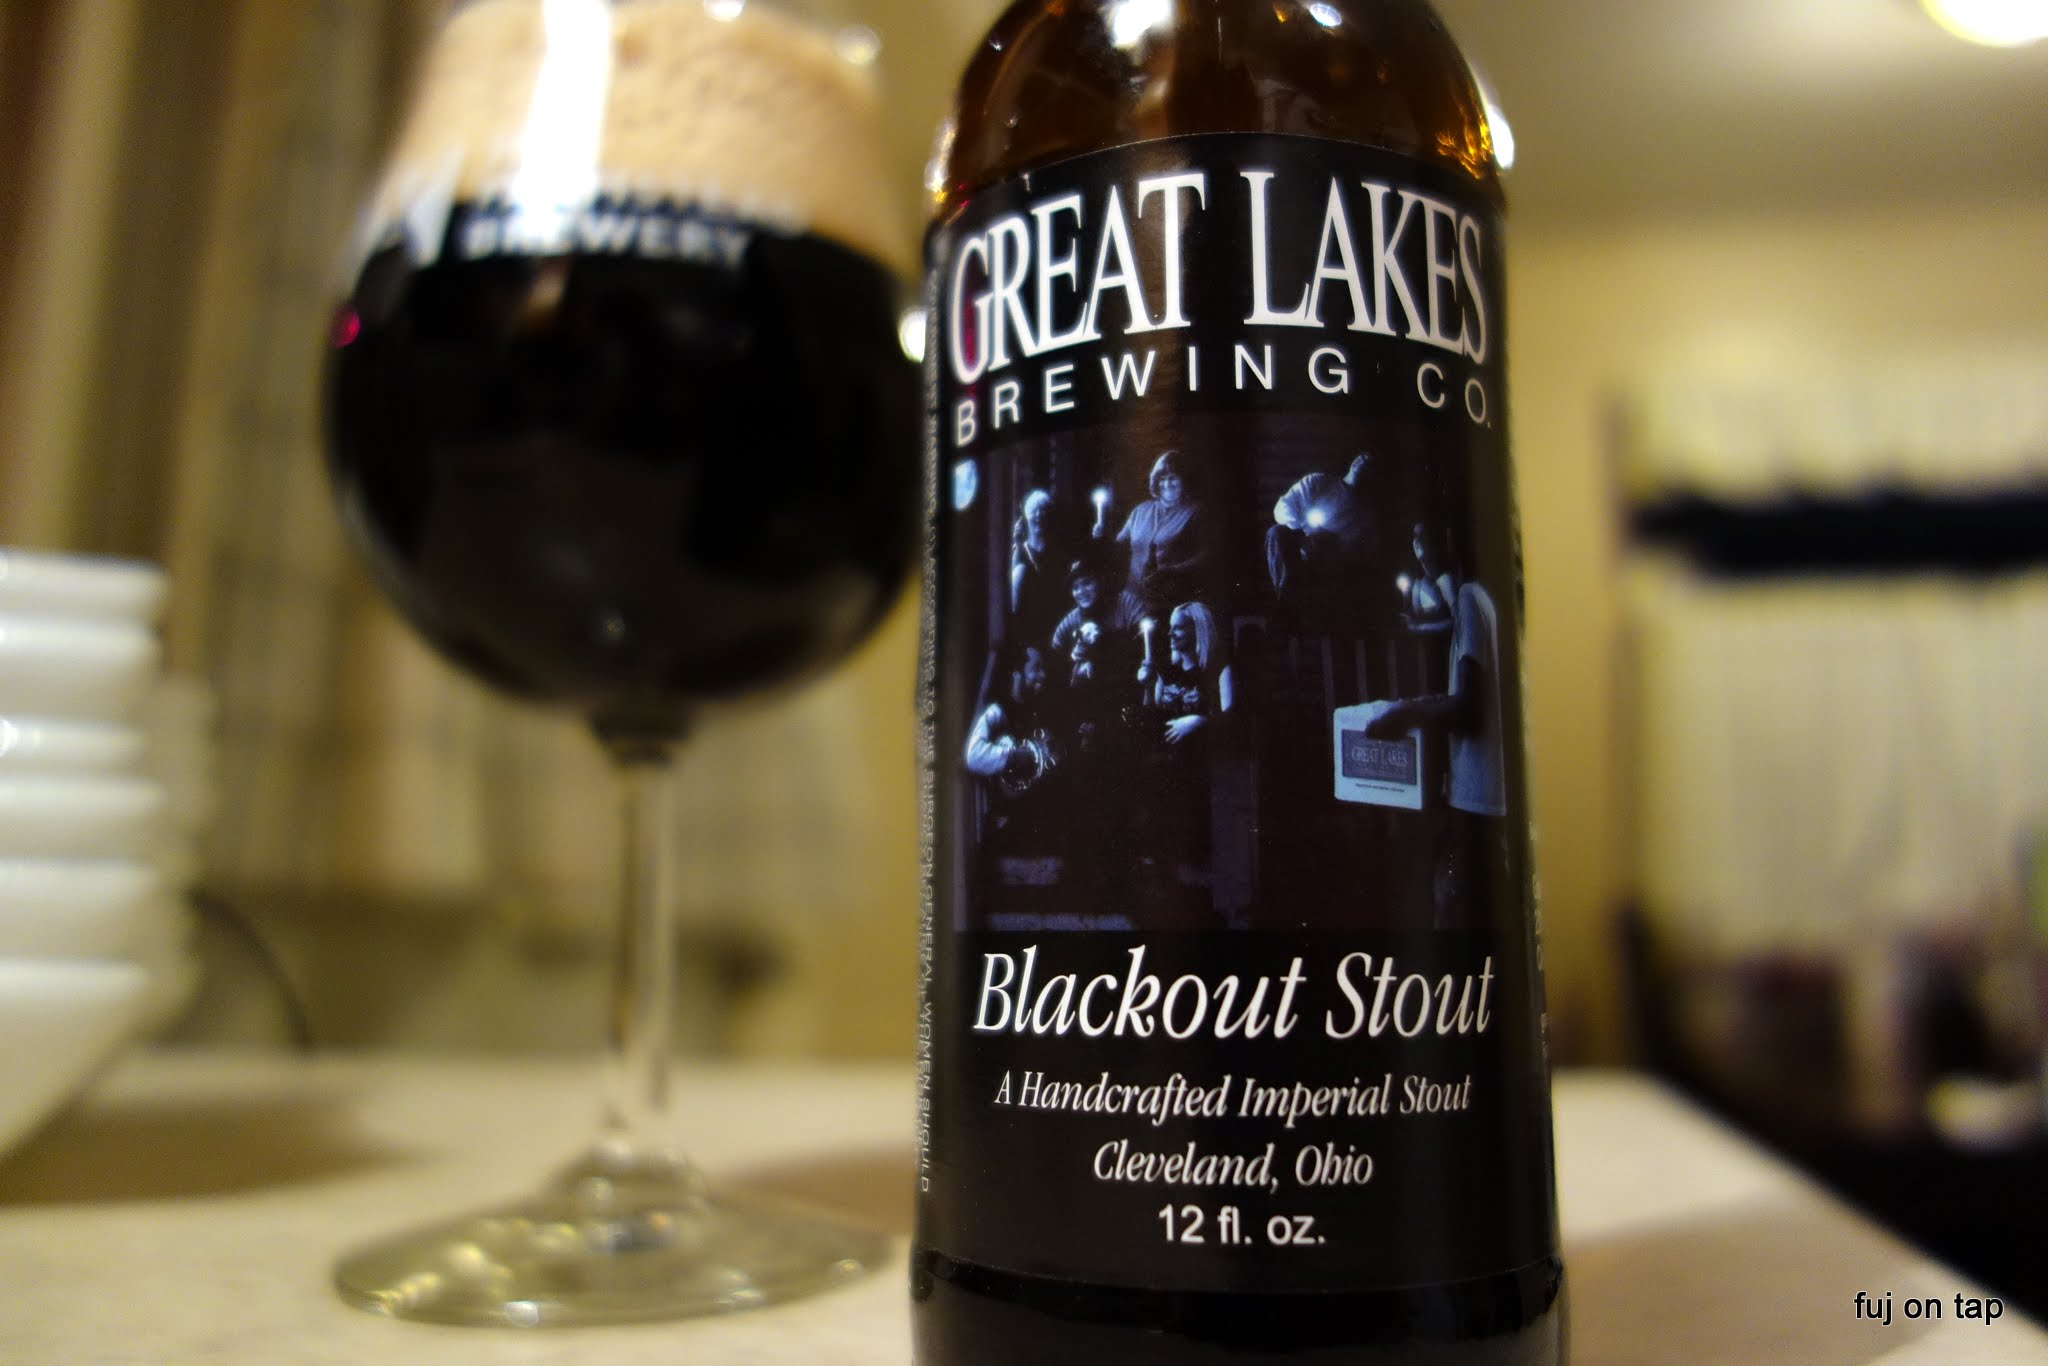 Great Lakes Brewing Co. Blackout Stout